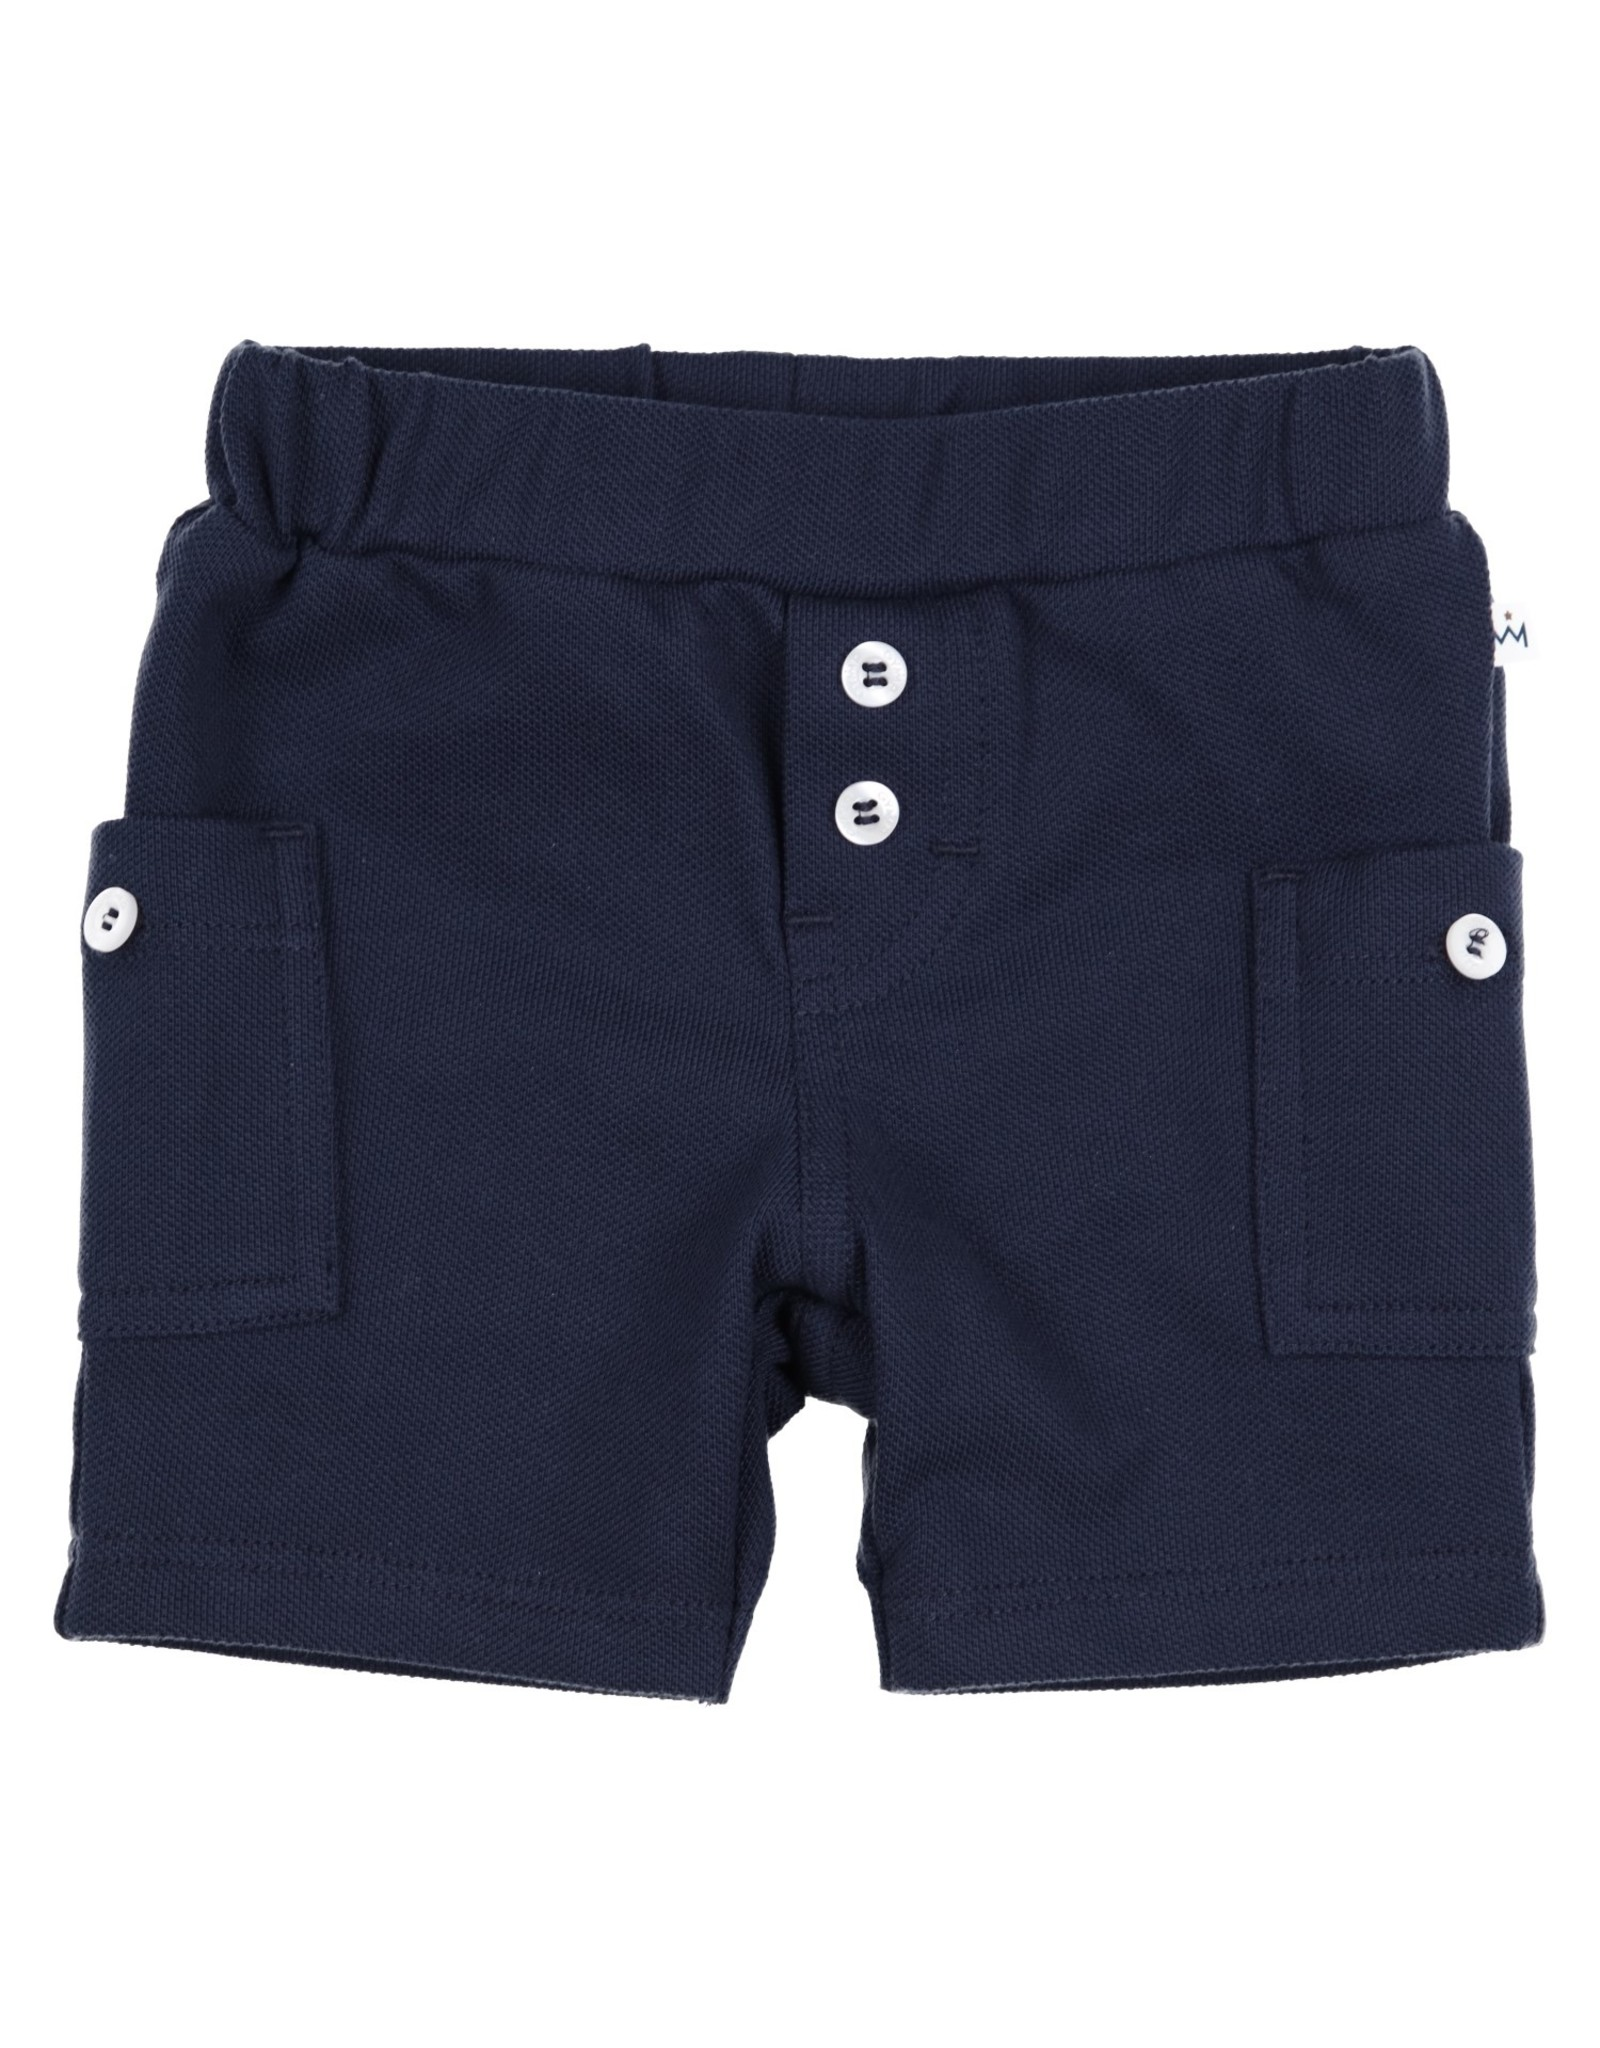 Gymp SHORTS  PIKACHU  BABY&TODDLE, MARINE